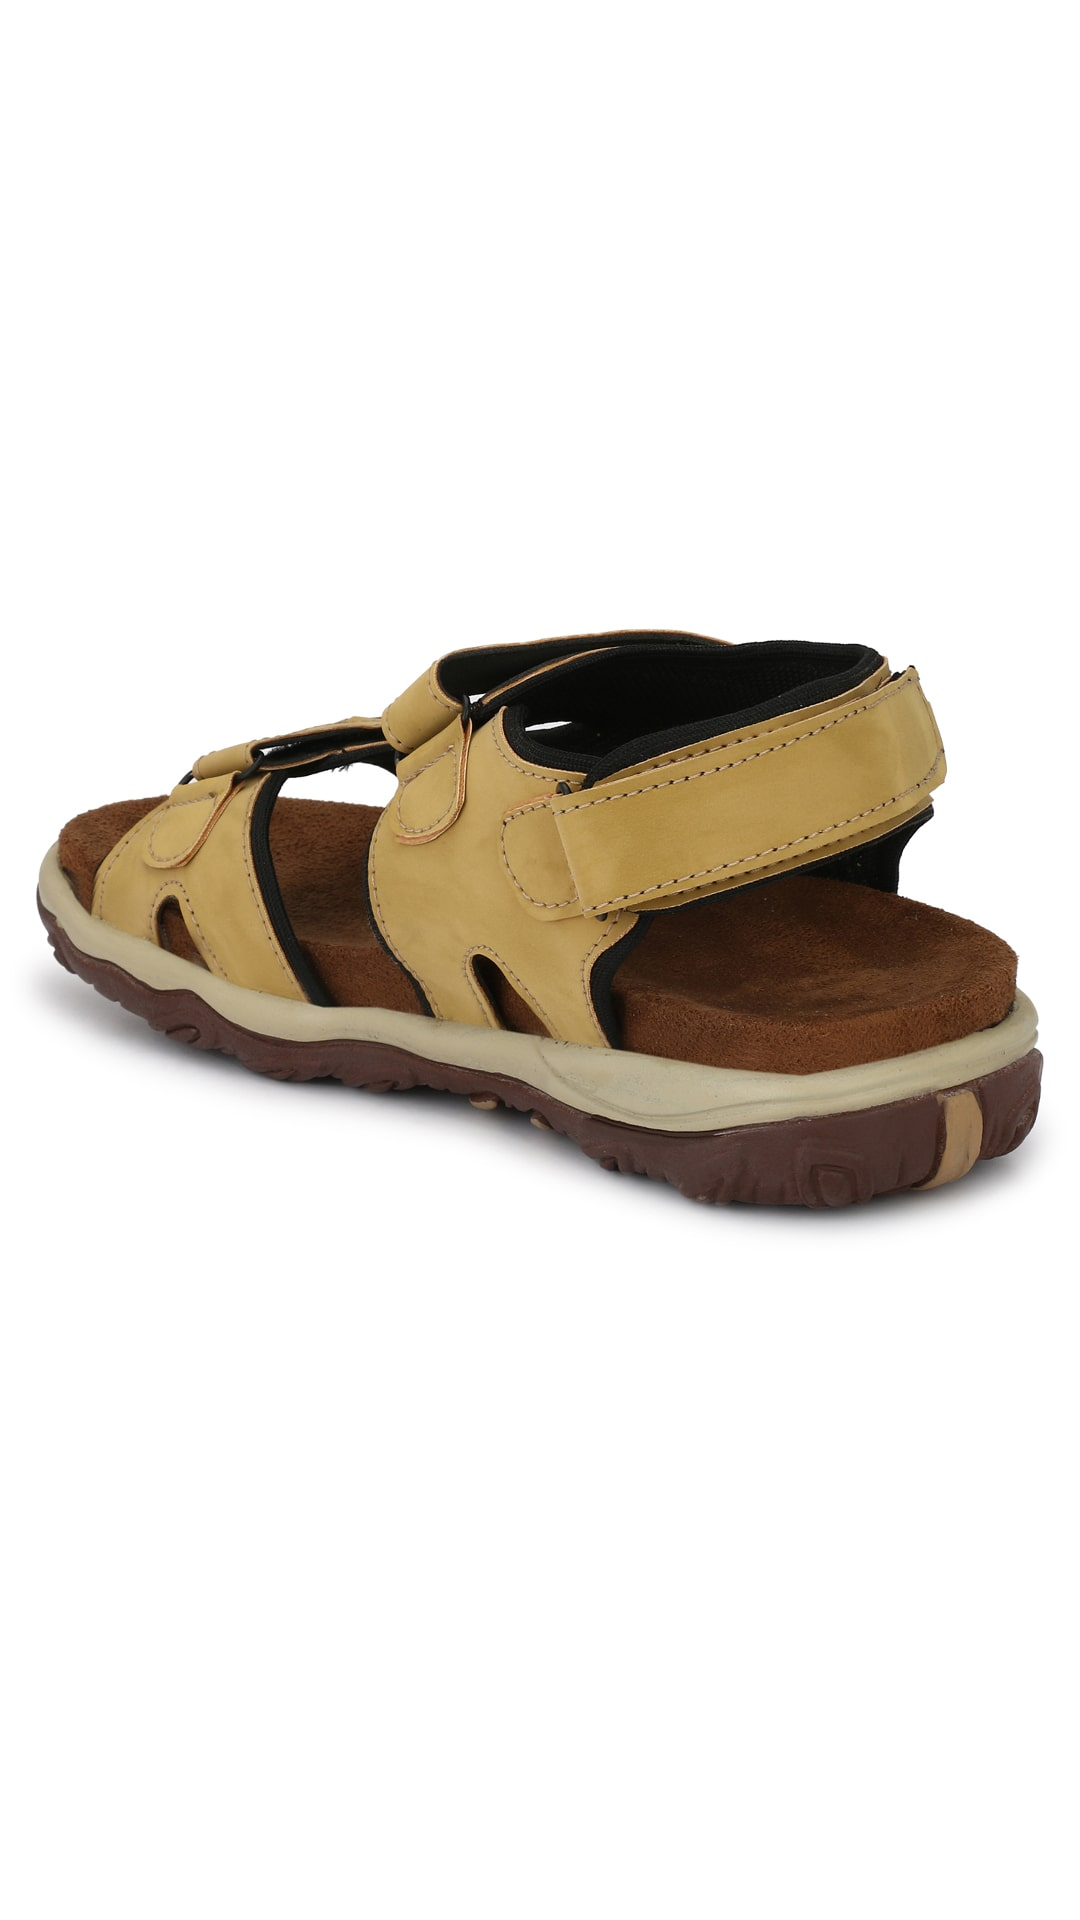 882b824dde85 Buy WOODSTONE XOX YELLOW SANDALS SANDALS FOR MEN Online at Low Prices in  India - Paytmmall.com